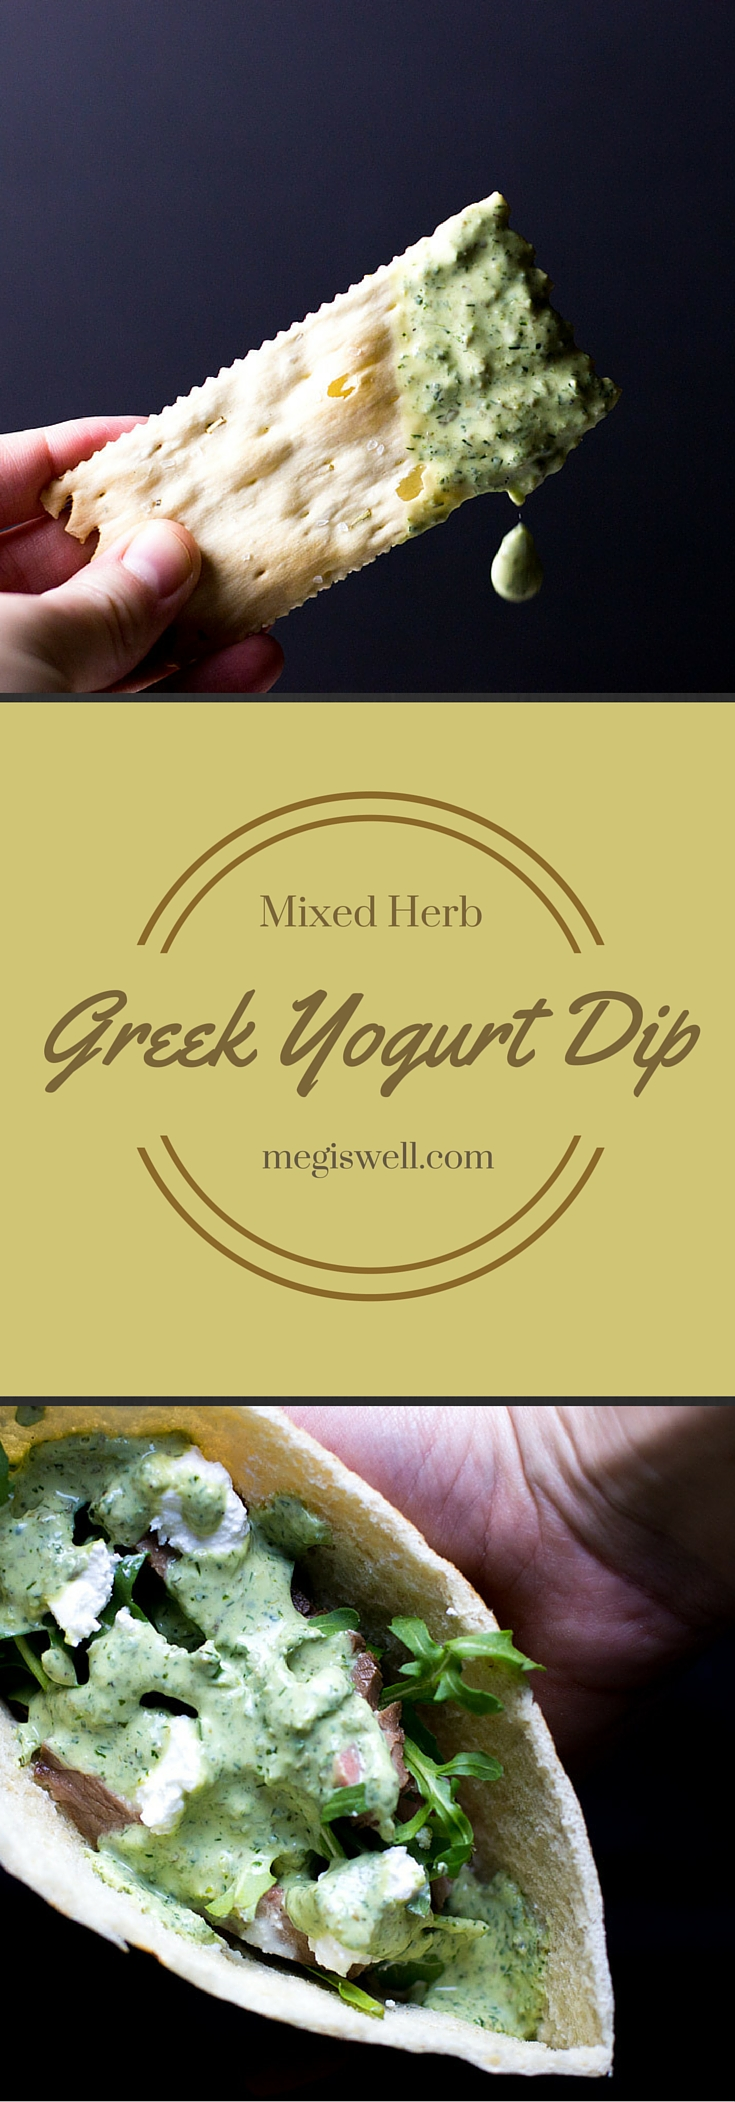 Mixed Herb Greek Yogurt Dip. Basil, mint, and dill combine with lemon juice, capers, and greek yogurt to make an easy and healthy addition to snack time.